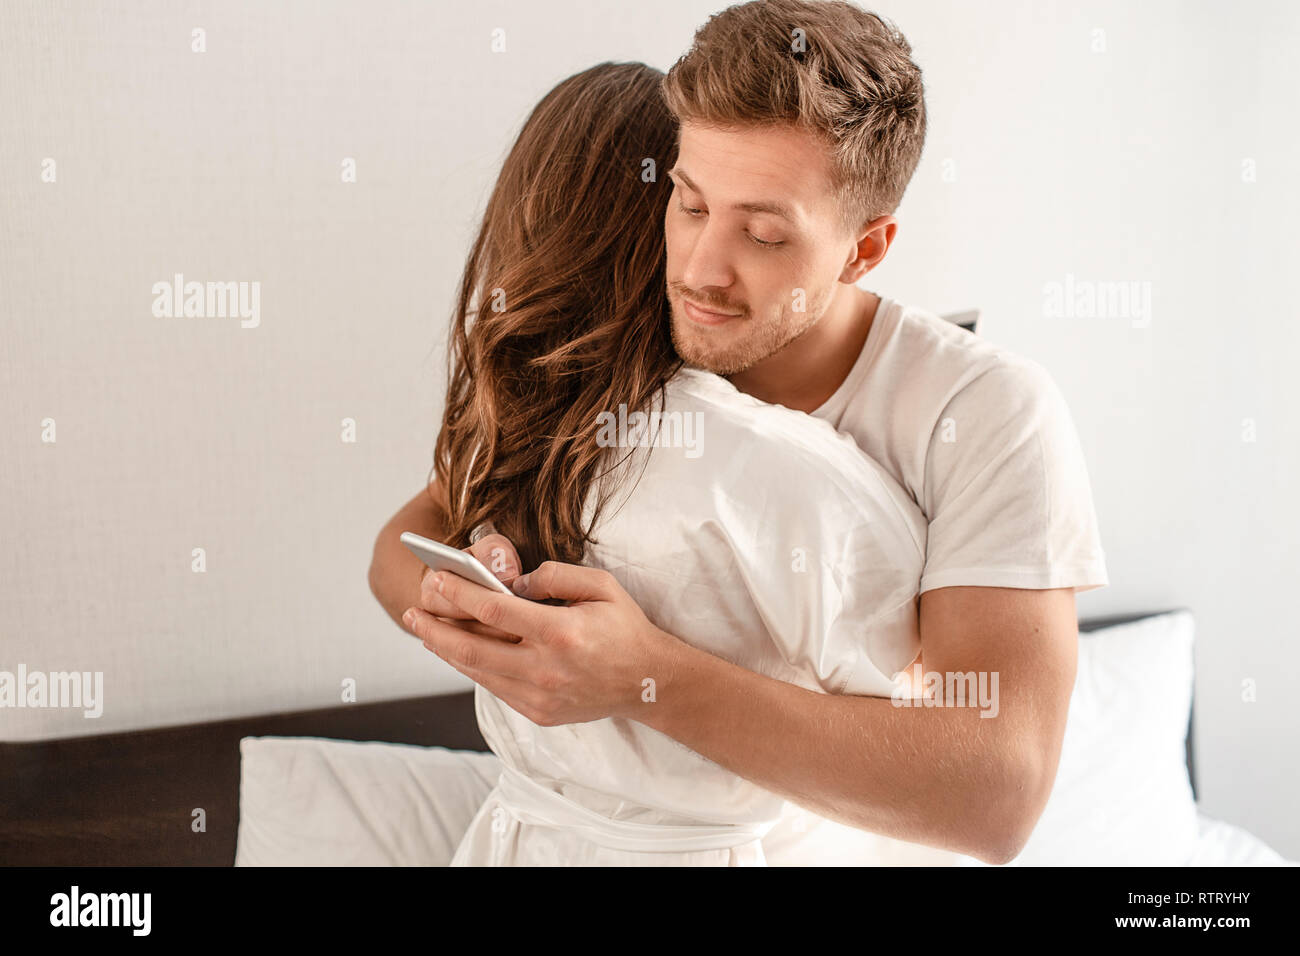 Young couple in the bedroom after waking up. Smiling unfaithful man is cheating and texting lover on the phone while hugging his girlfriend - Stock Image